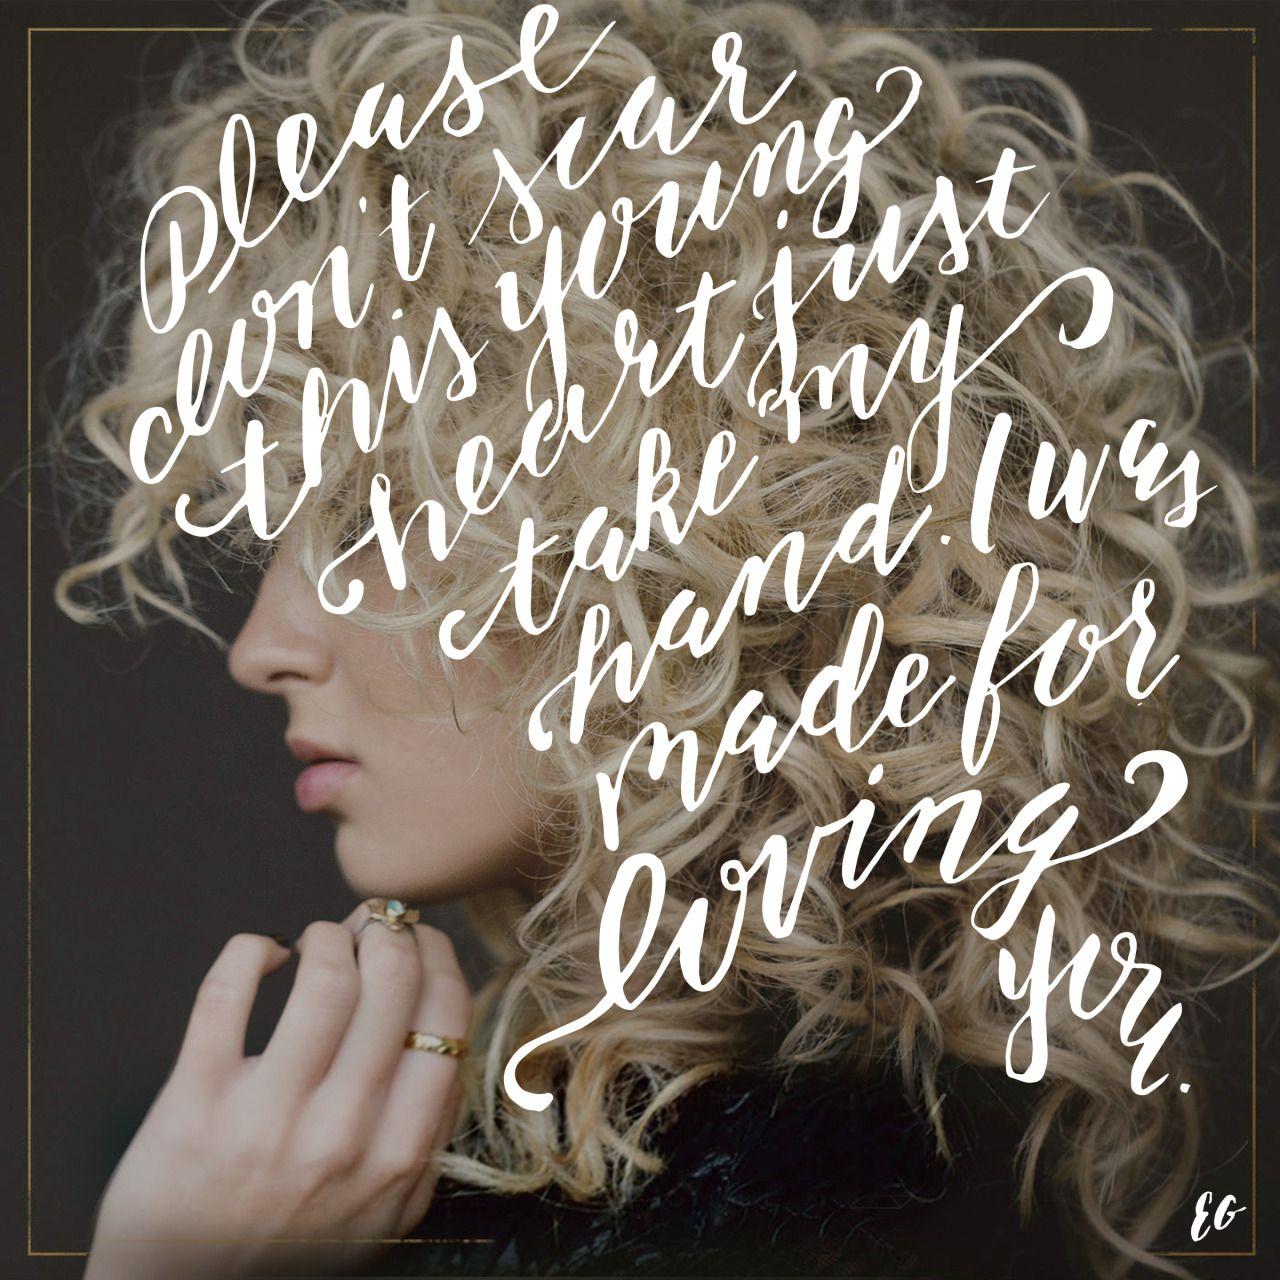 I Was Made For Loving You Tori Kelly Ed Sheerhan Lettering By